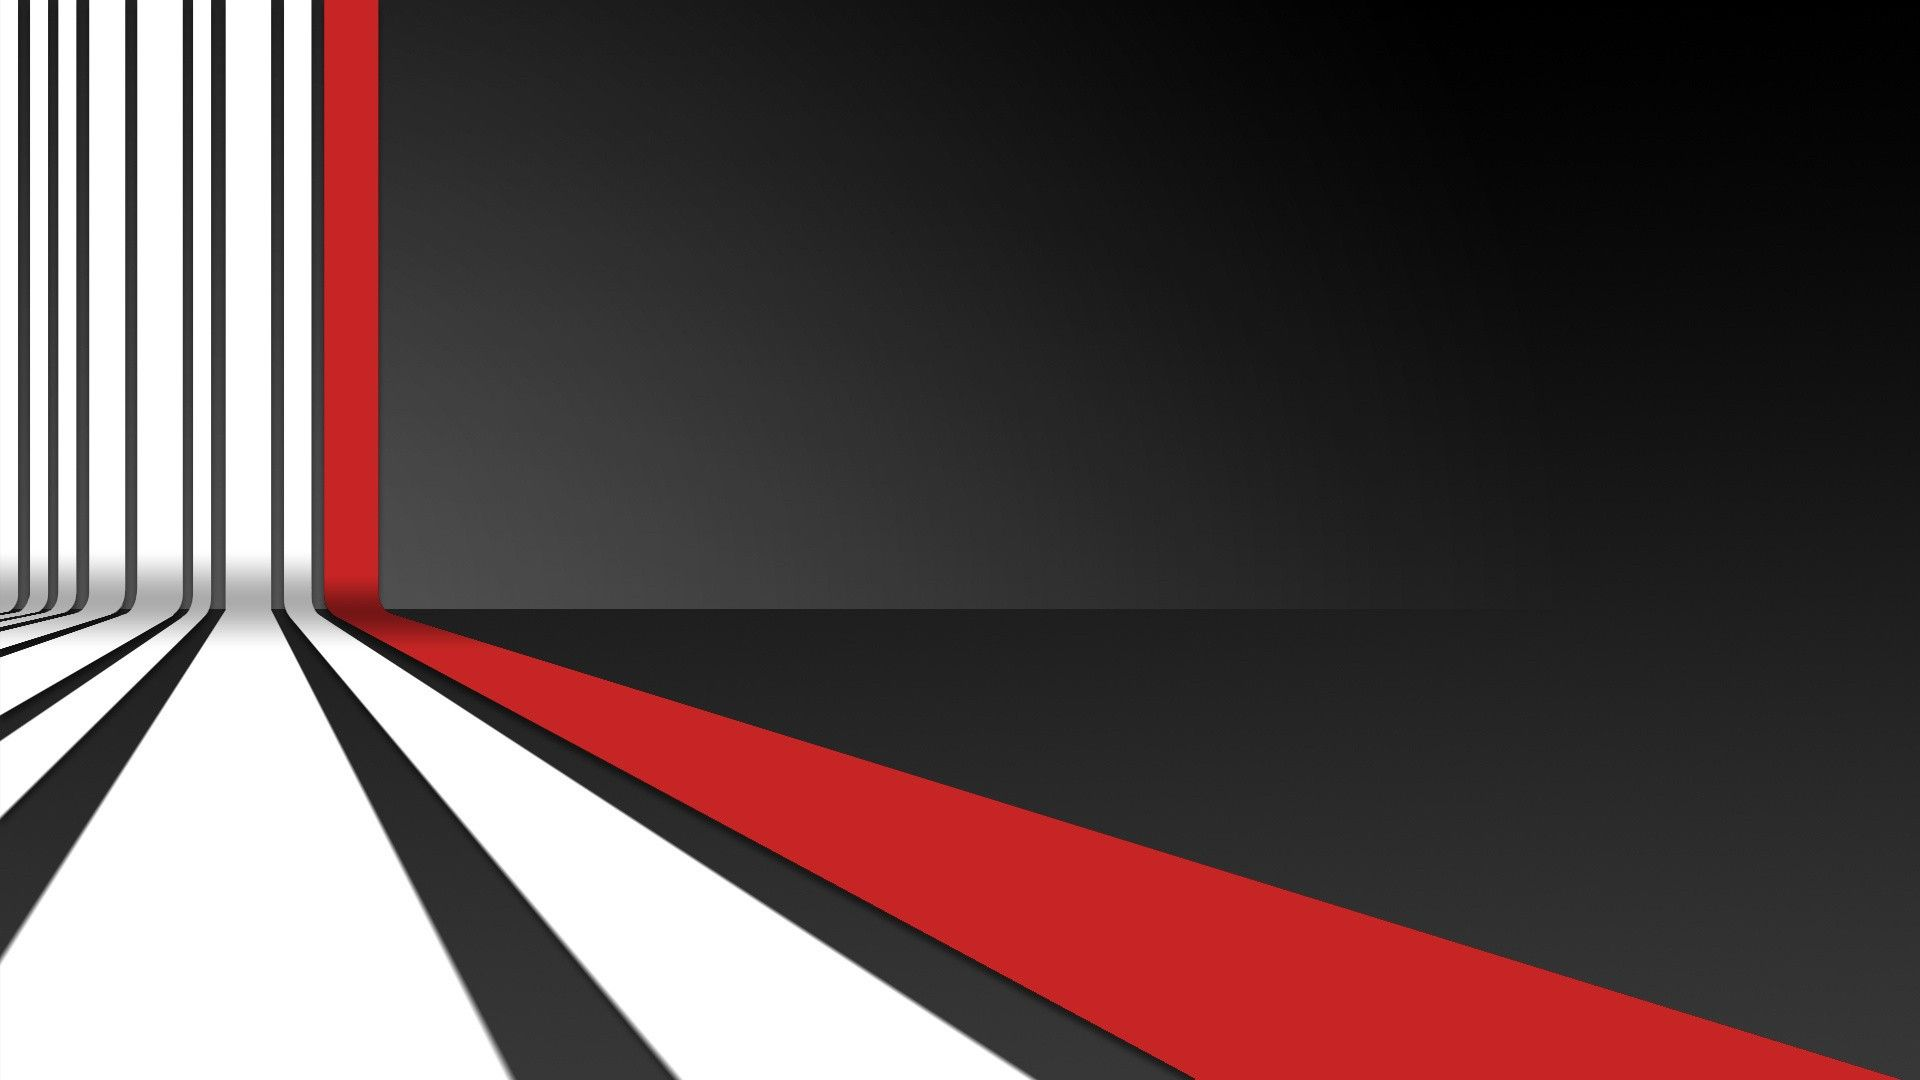 White Striped and Red Stripe HD Wallpaper 1920x1080